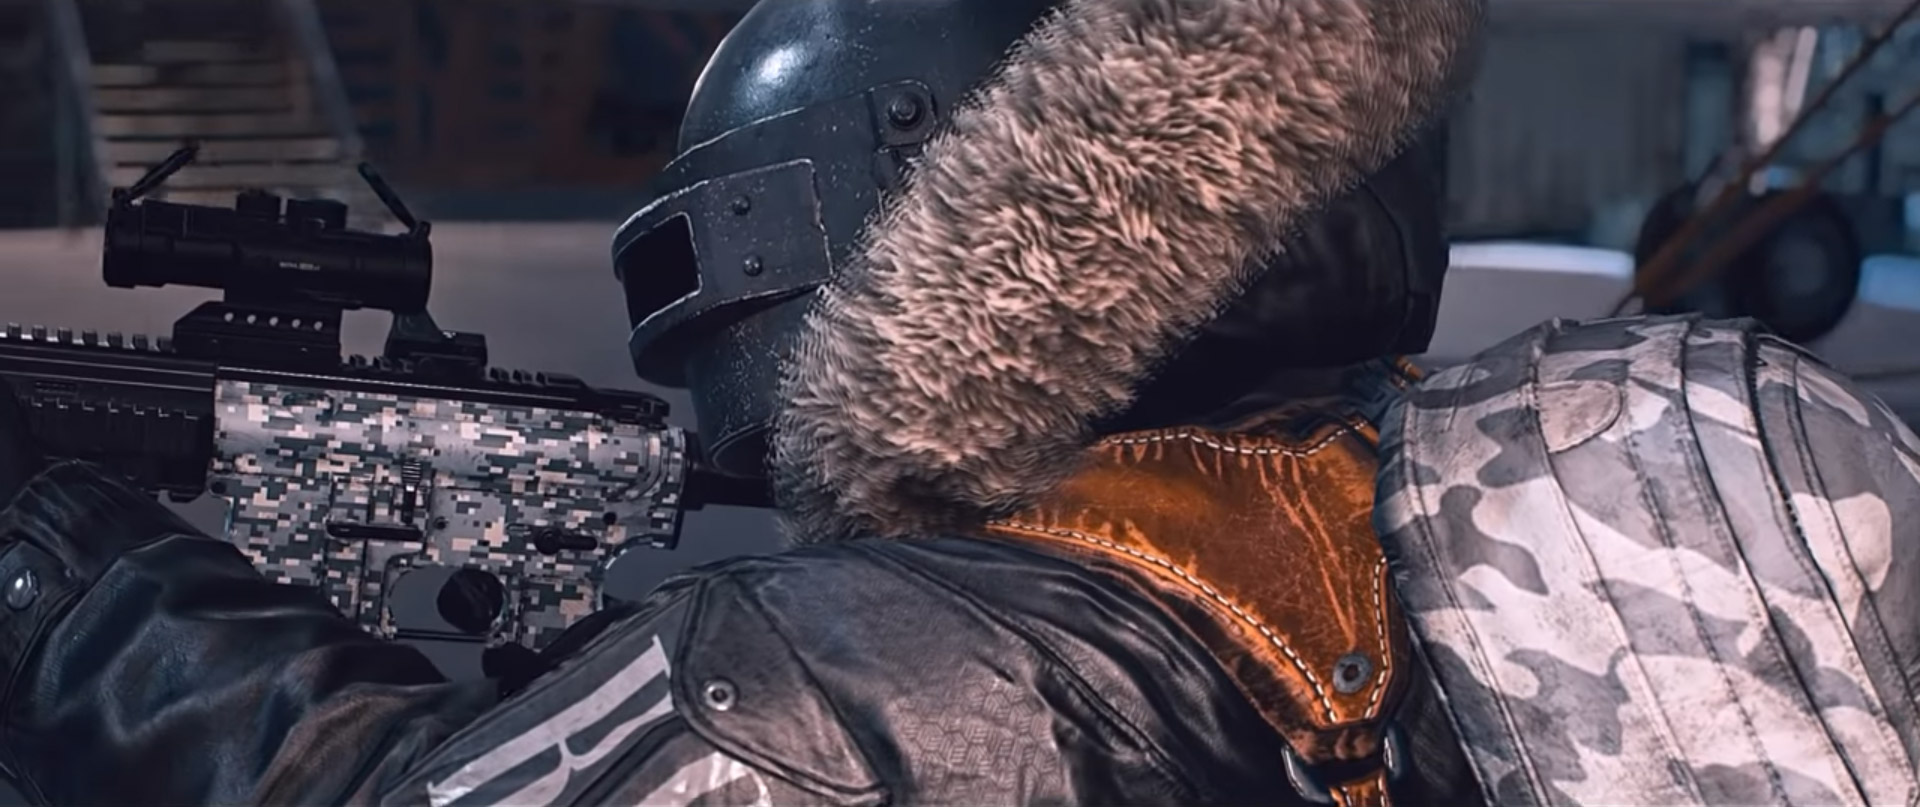 PUBG is going 'beyond battle royale' with a new story-focused game